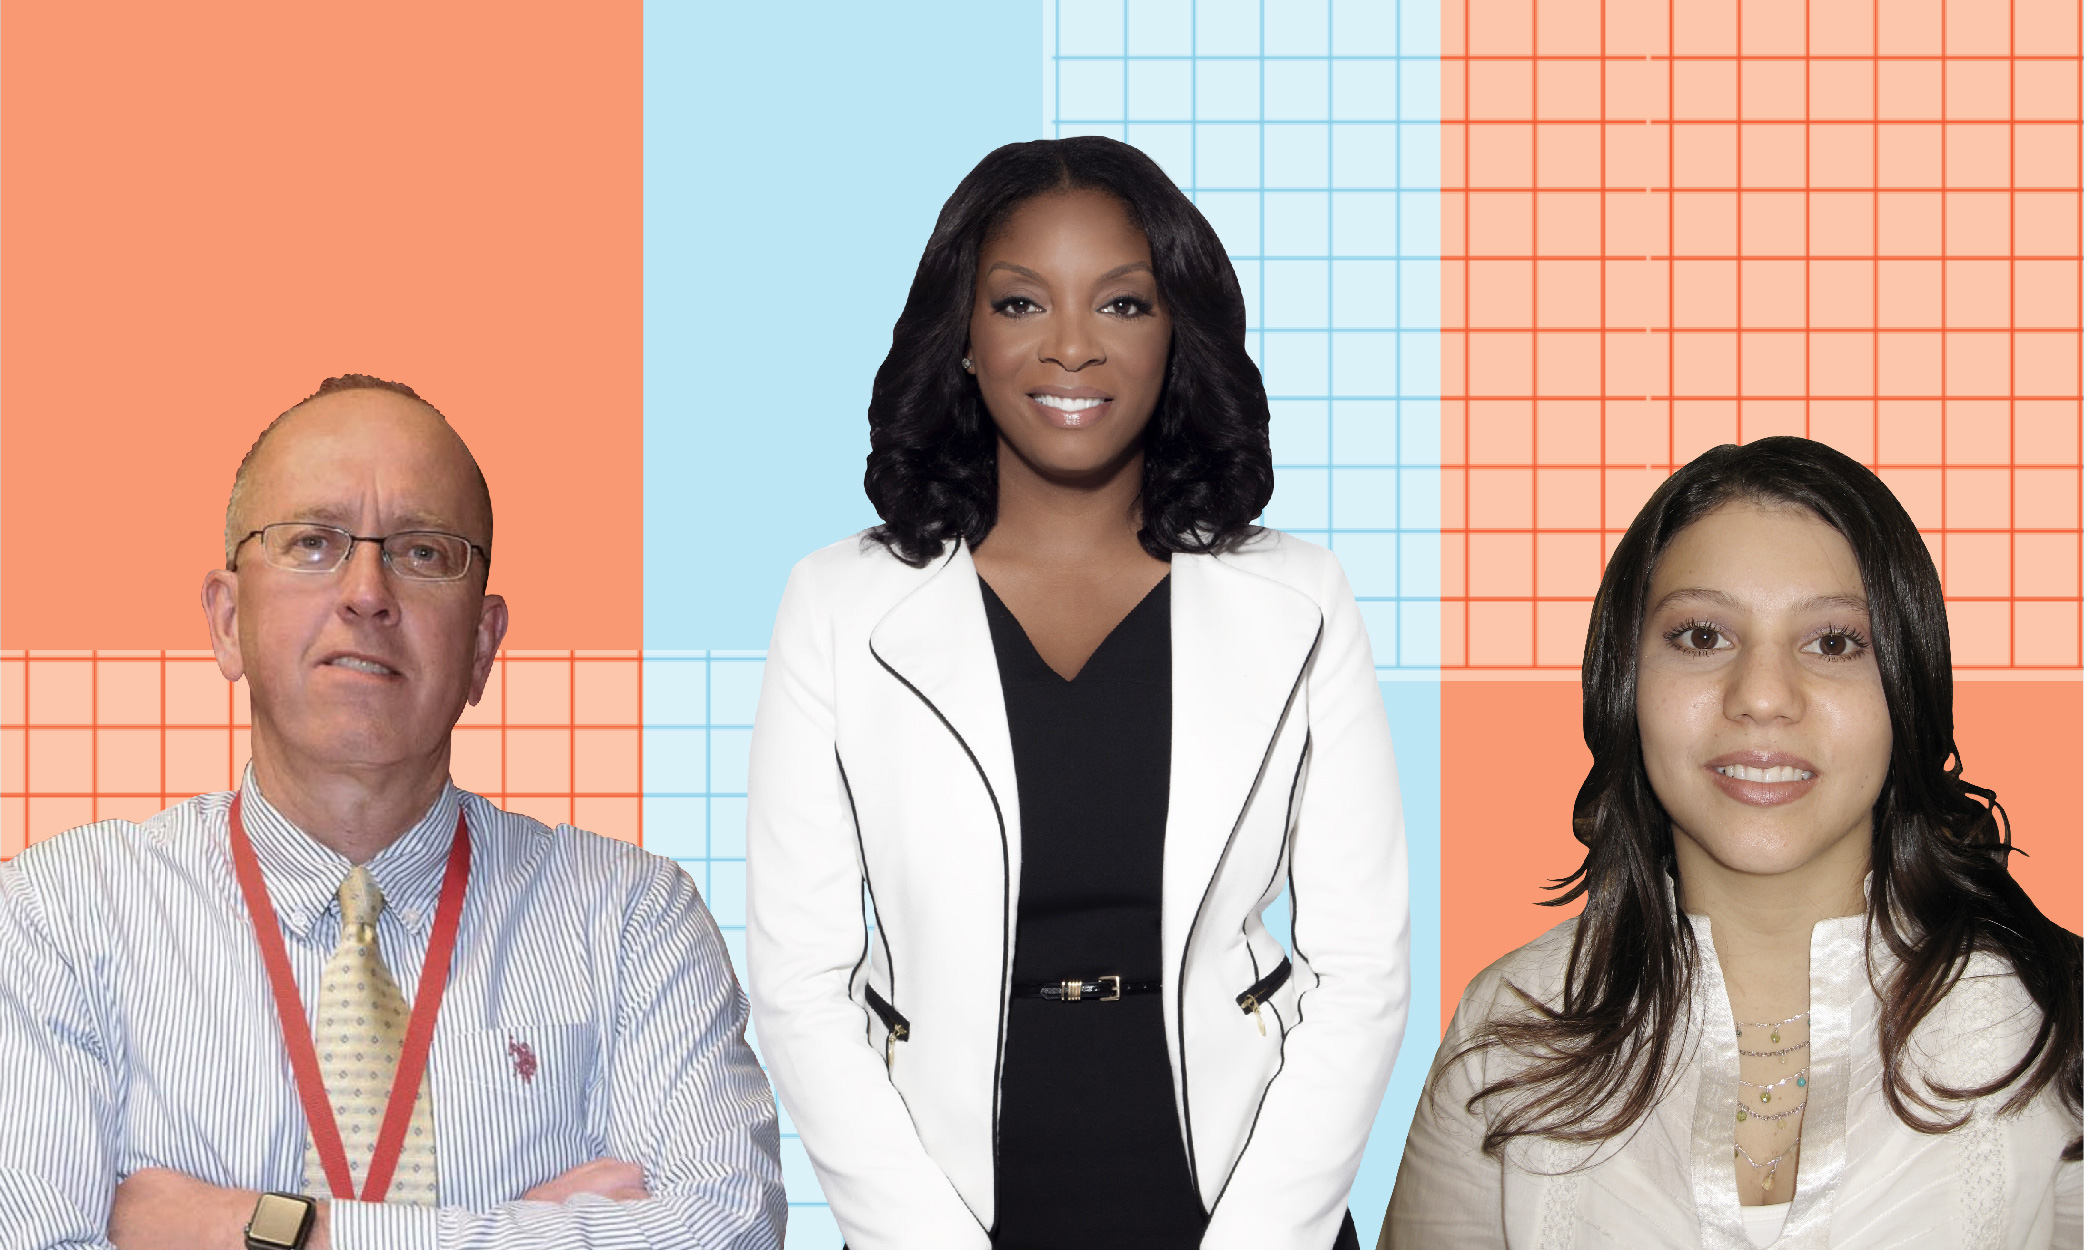 A collage made from the portrait images of principals Doug Kittle, Dr. Nadia Lopez and Lisa Leoni again a blue and orange chequered background